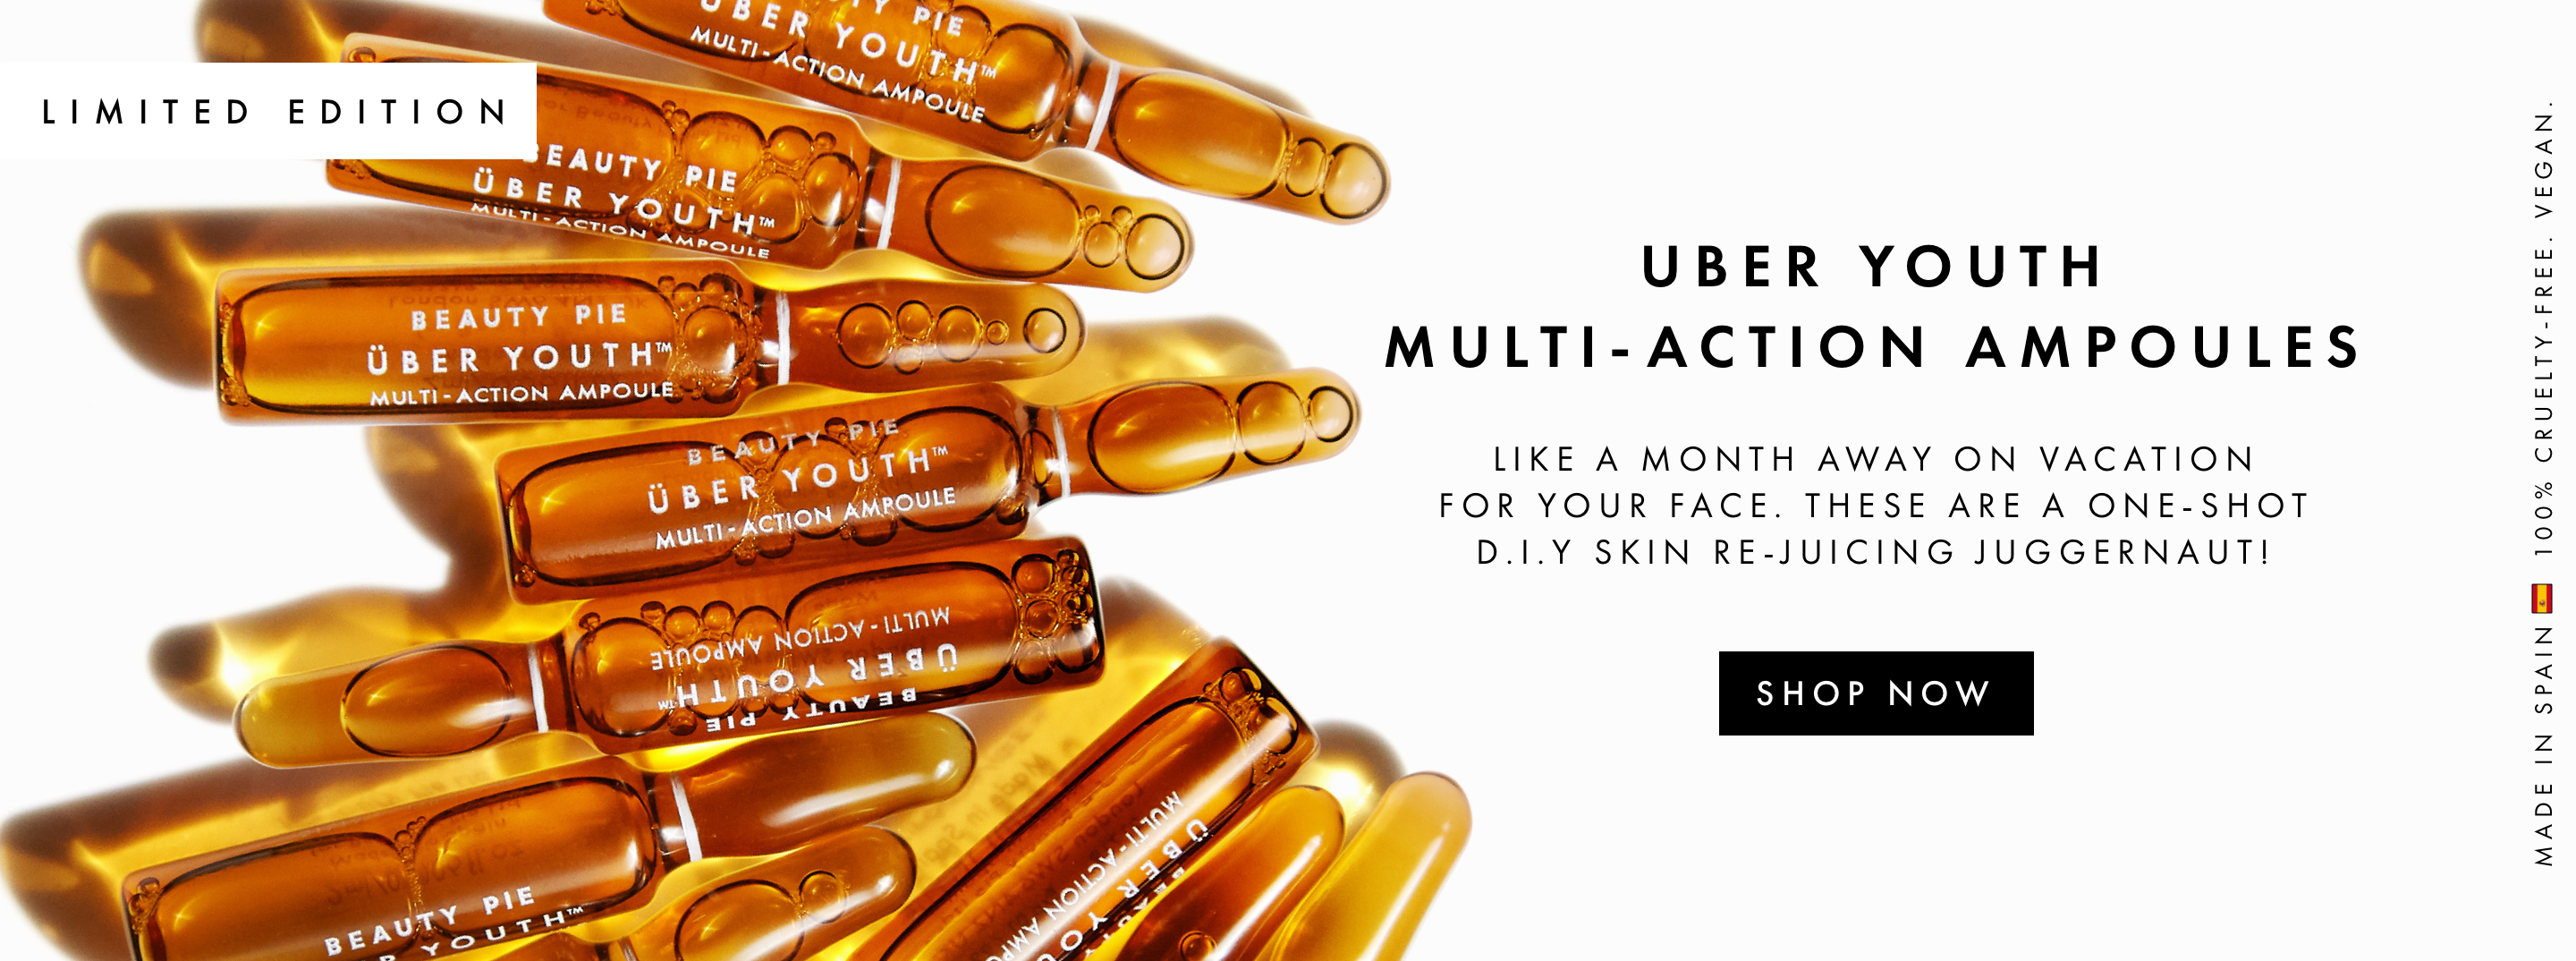 Uber Youth Multi-Action Ampoules